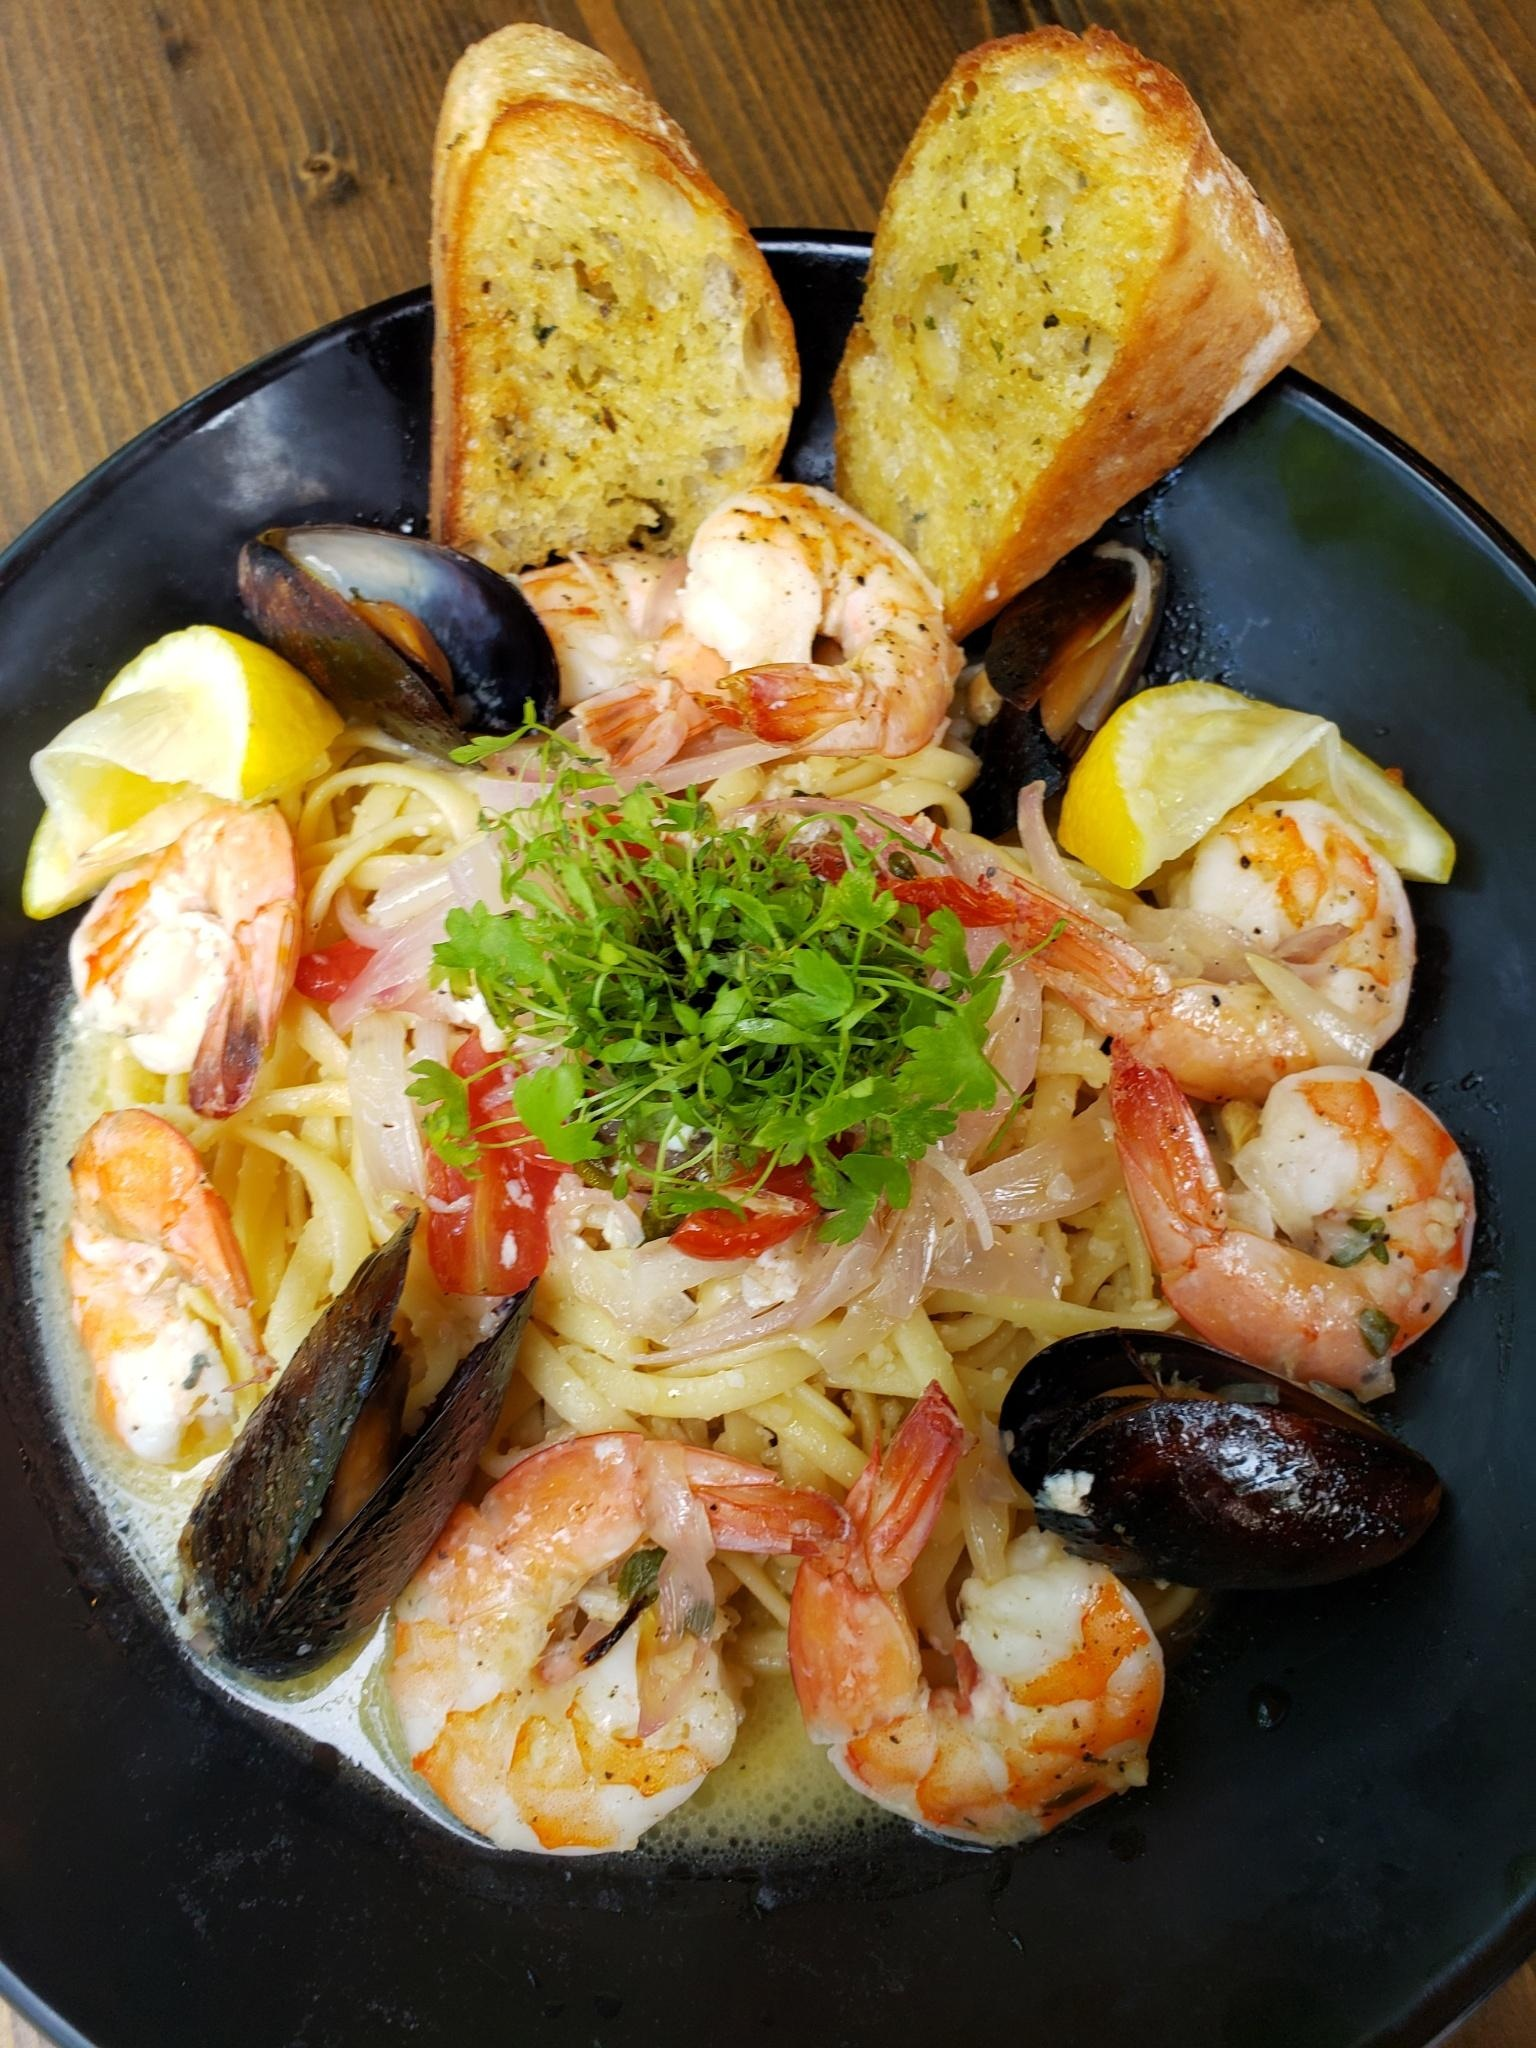 Spaghetti with toasted garlic bread slices, mussels and shrimp